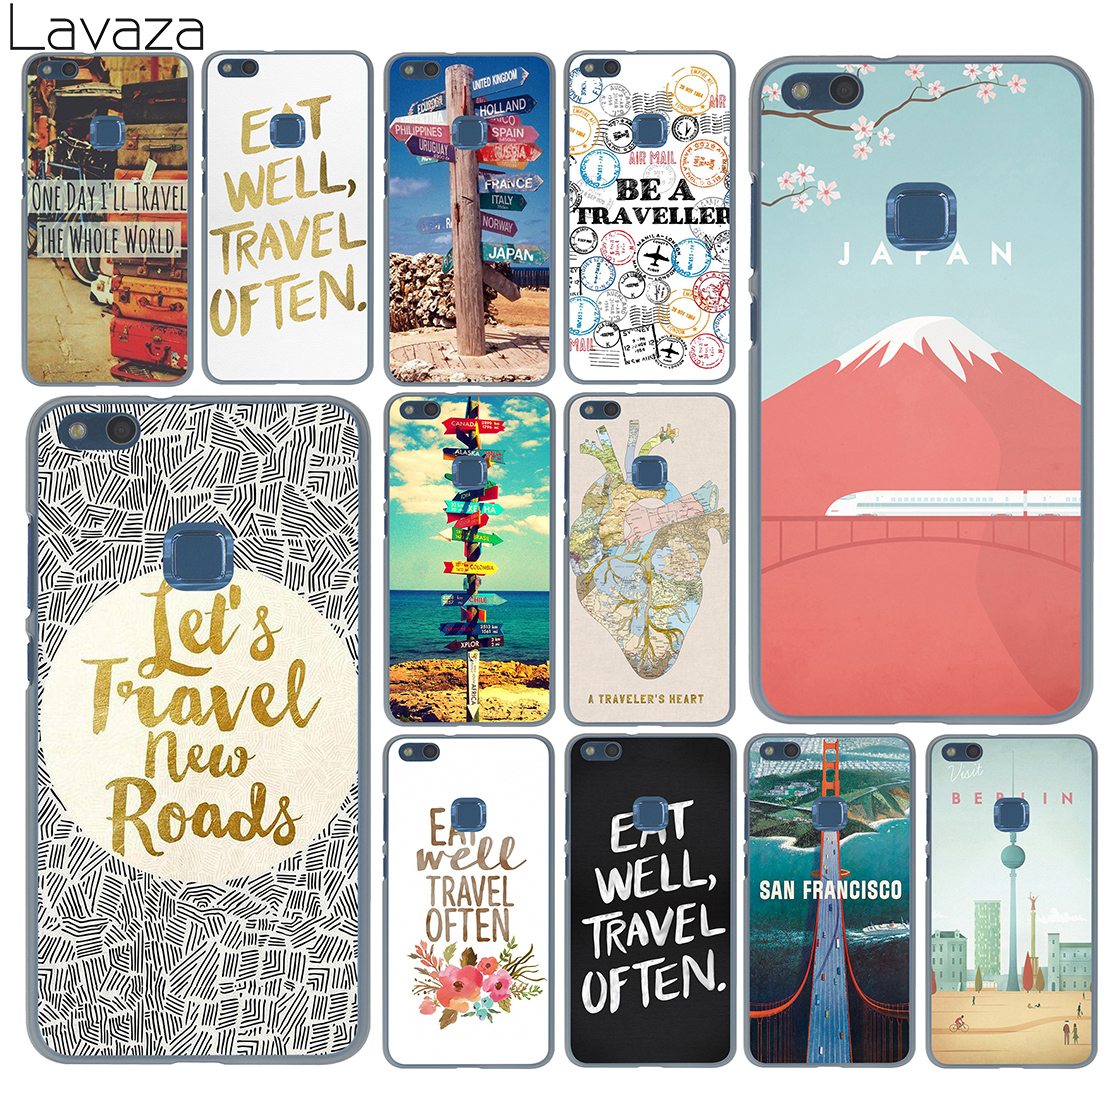 Lavaza eat well travel often poster signpost I ourneys Case for Huawei P20 P10 P9 Plus P8 Lite Mini P smart Mate 10 9 Pro Lite ...